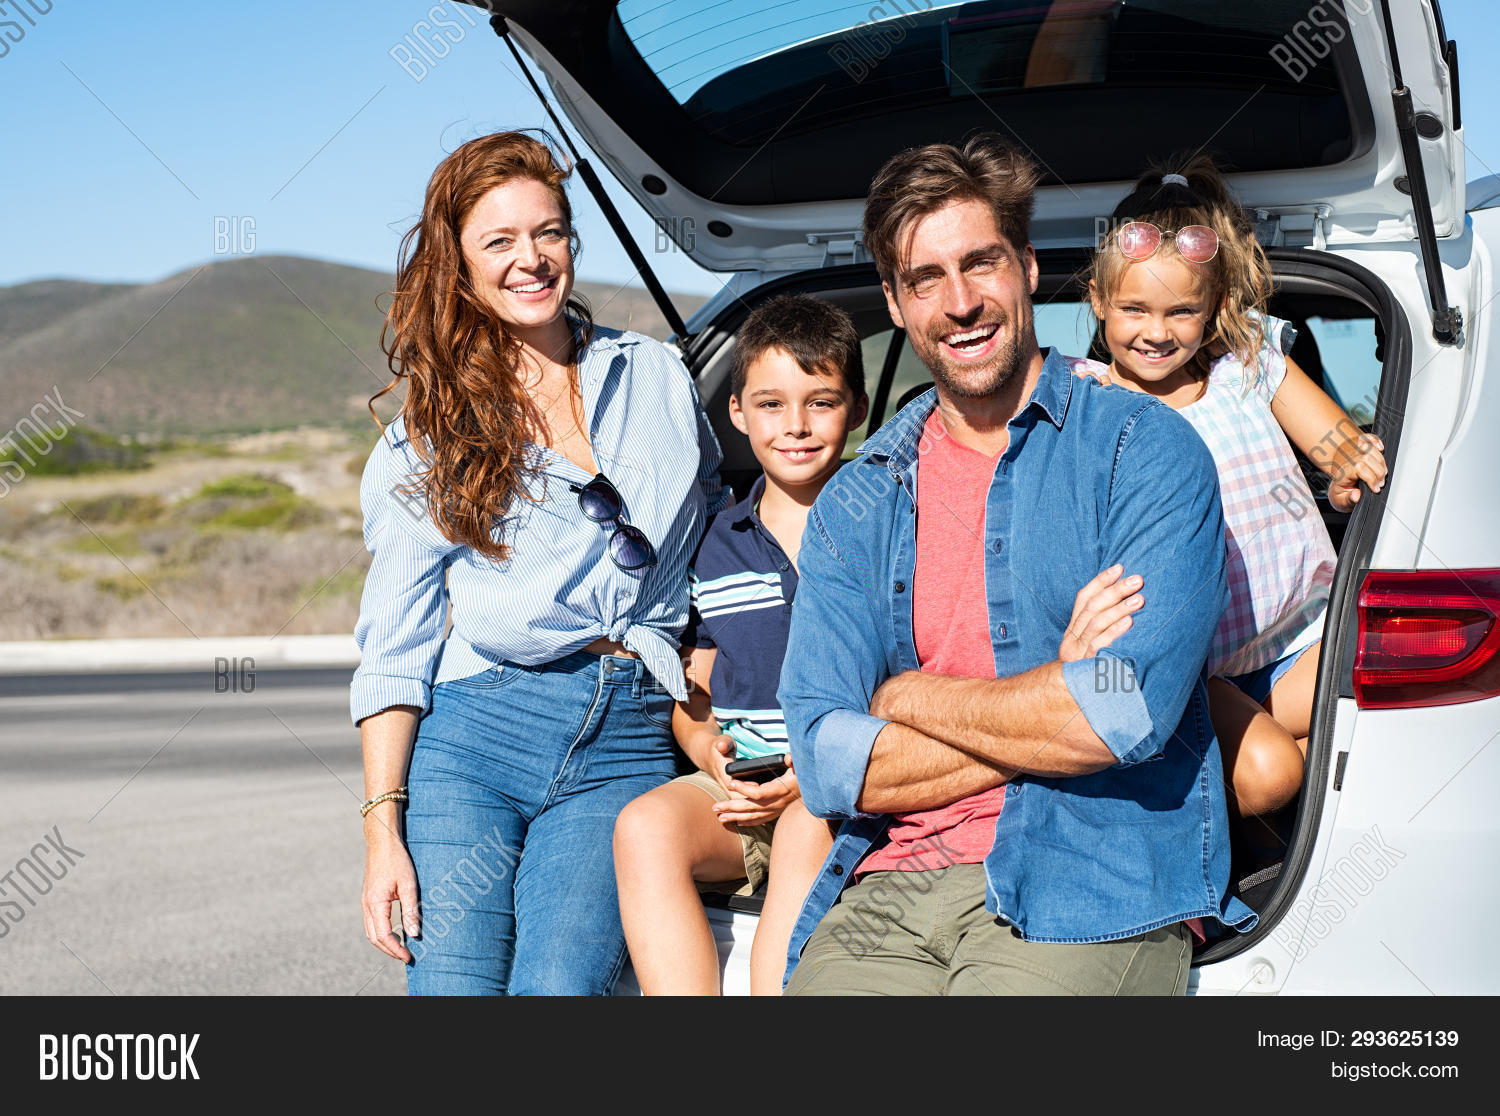 Smiling family with two kids sitting in car trunk and looking at camera. Happy children enjoying wit